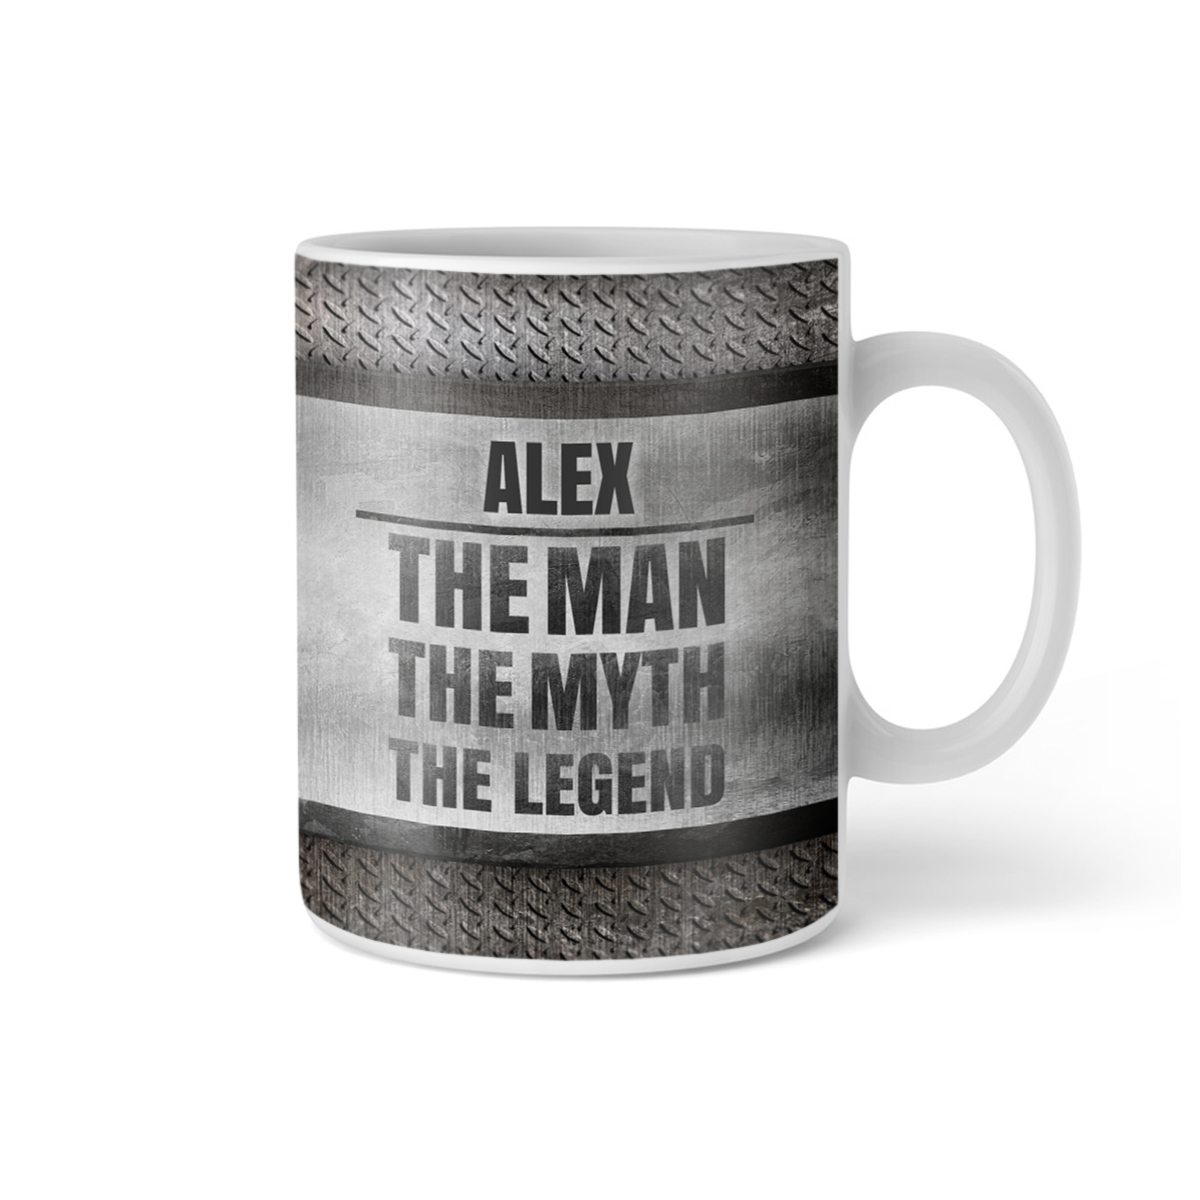 Tasse The Legend mit Namen